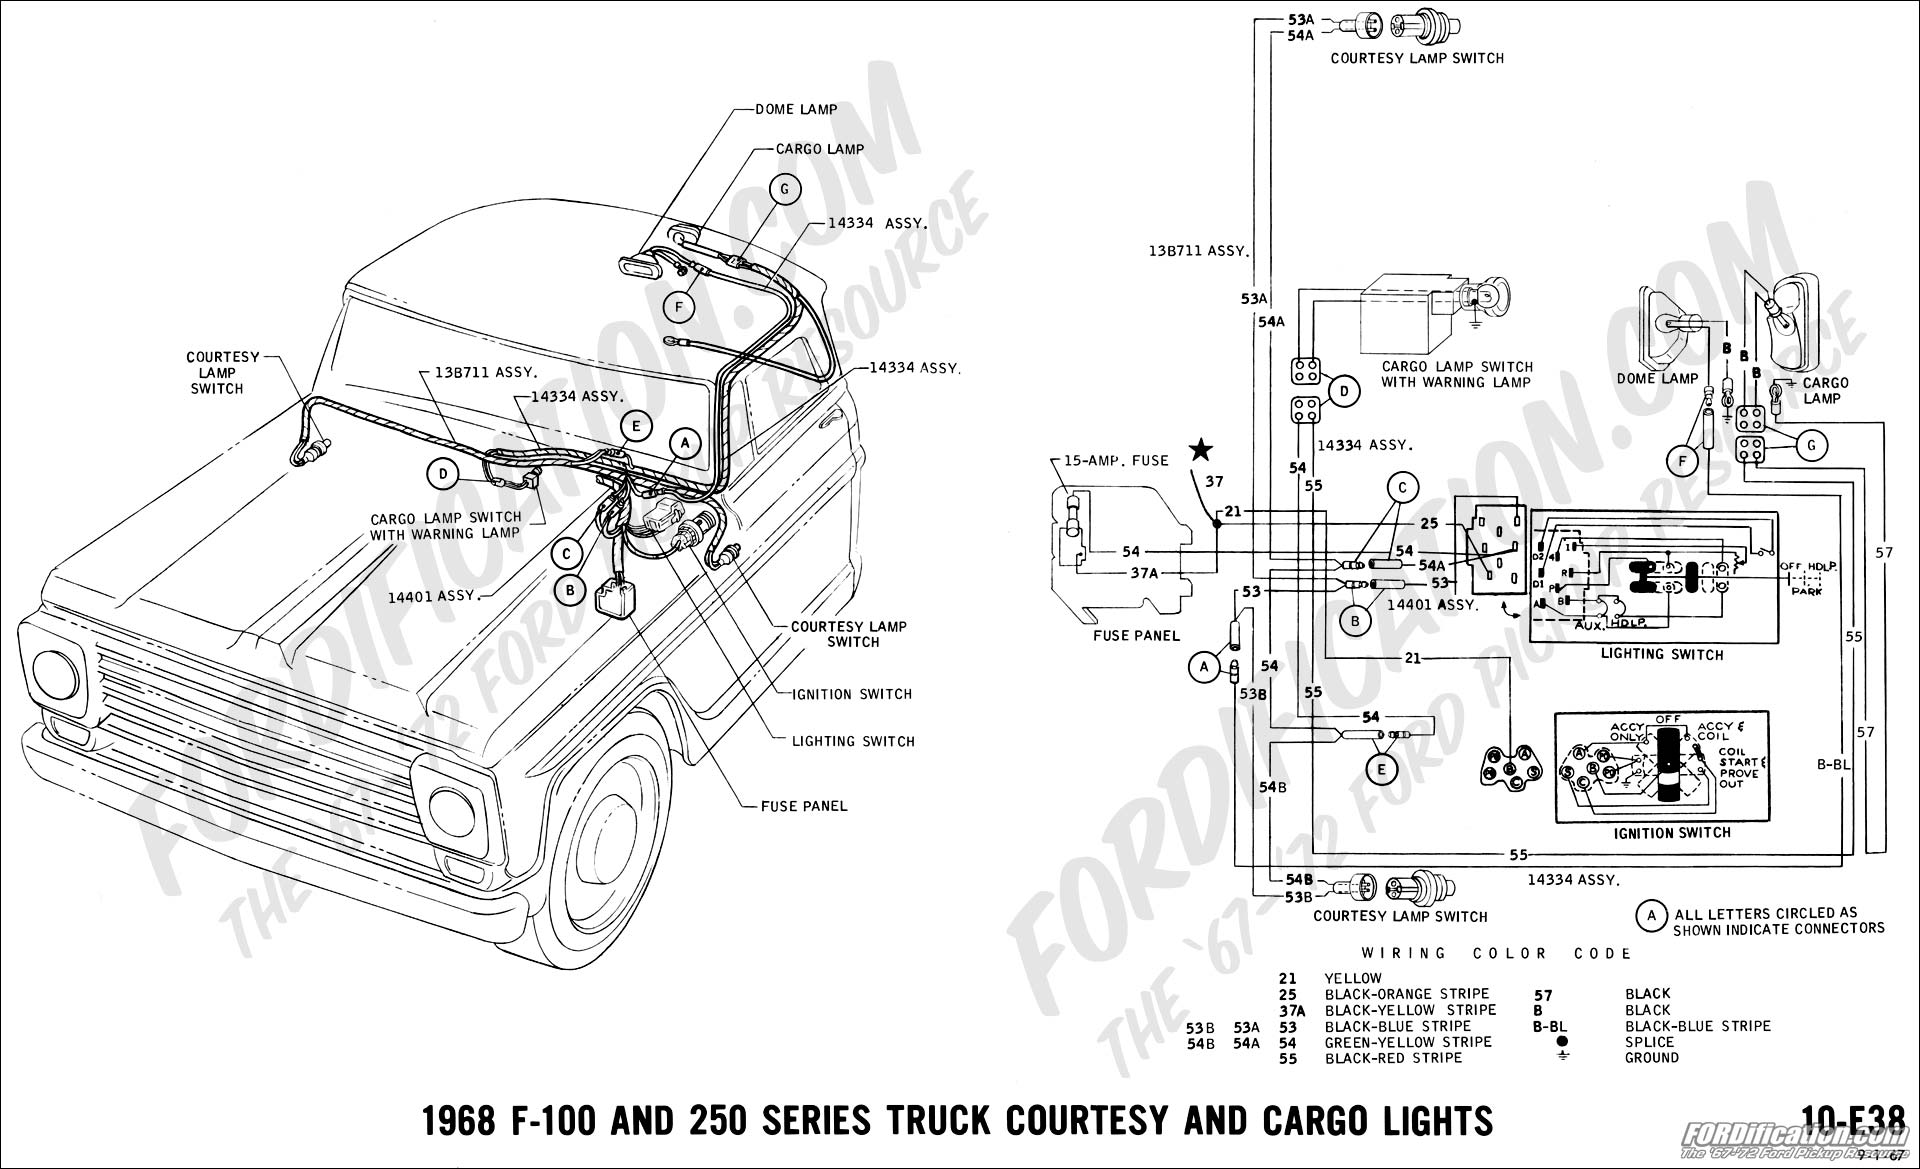 68 40 ford truck technical drawings and schematics section h wiring truck camper wiring diagram at gsmportal.co